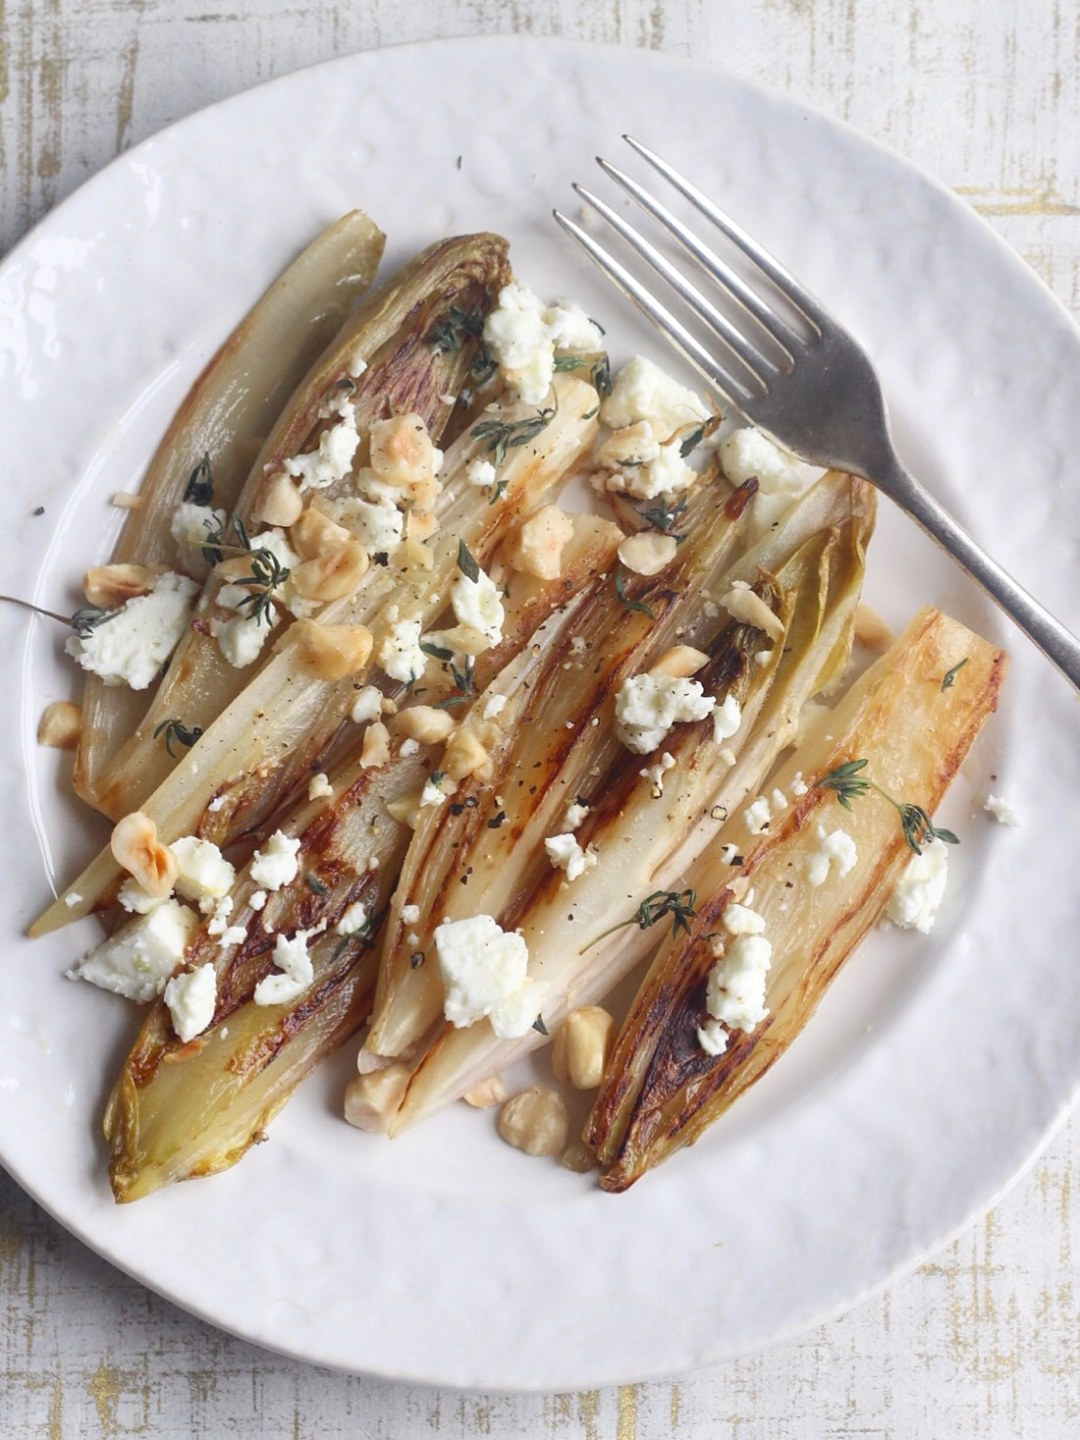 Pan-fried chicory with feta and hazelnuts